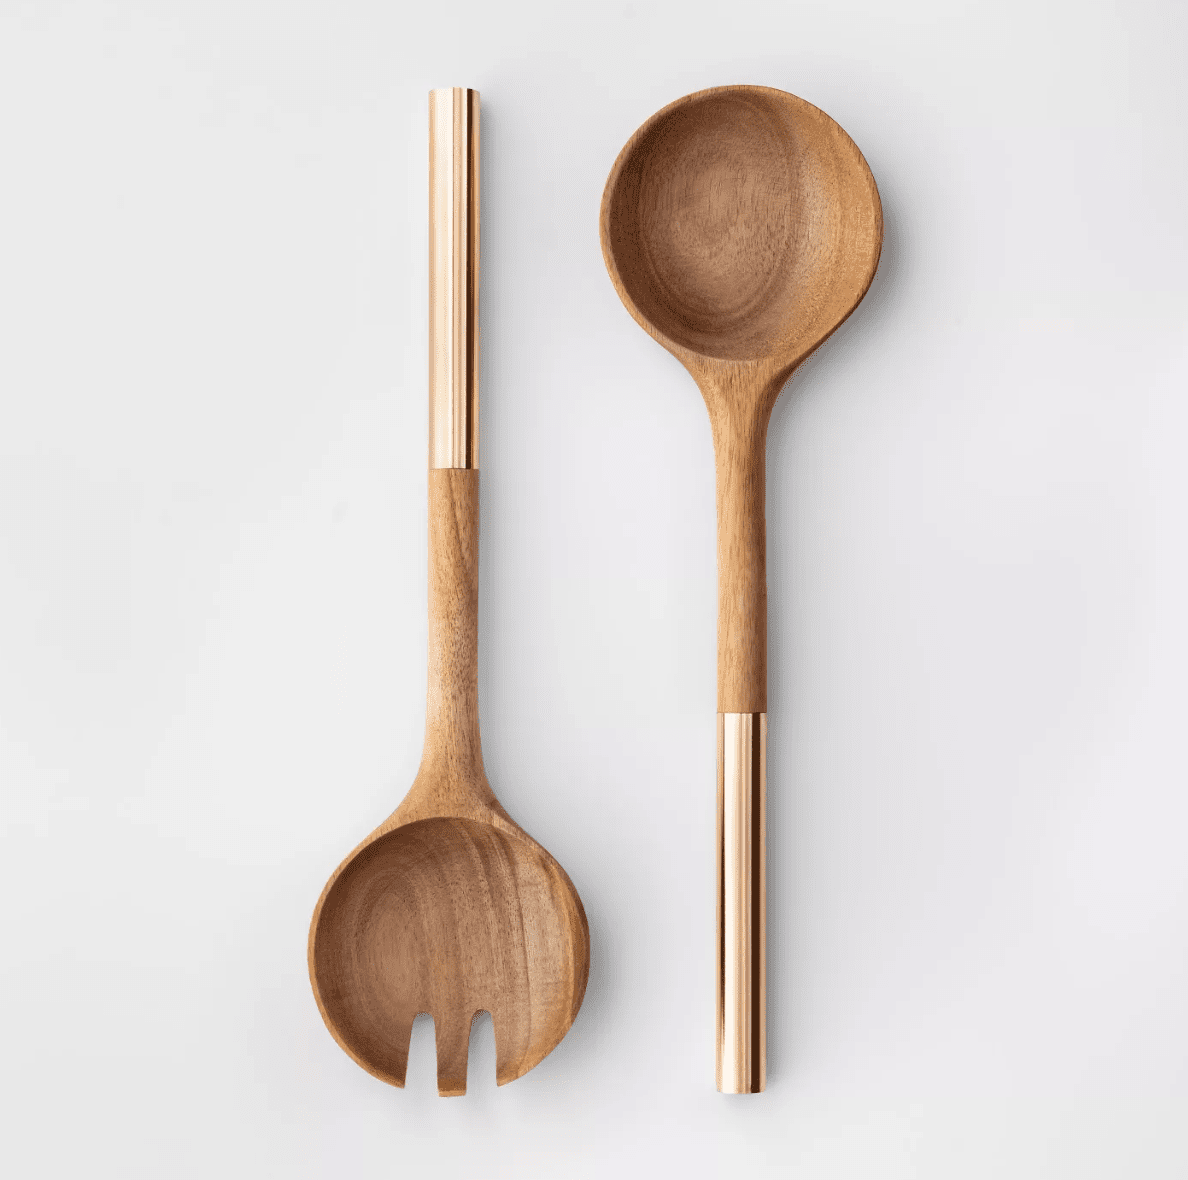 Cravings by Chrissy Teigen 2pc Acacia Wood Salad Serving Set